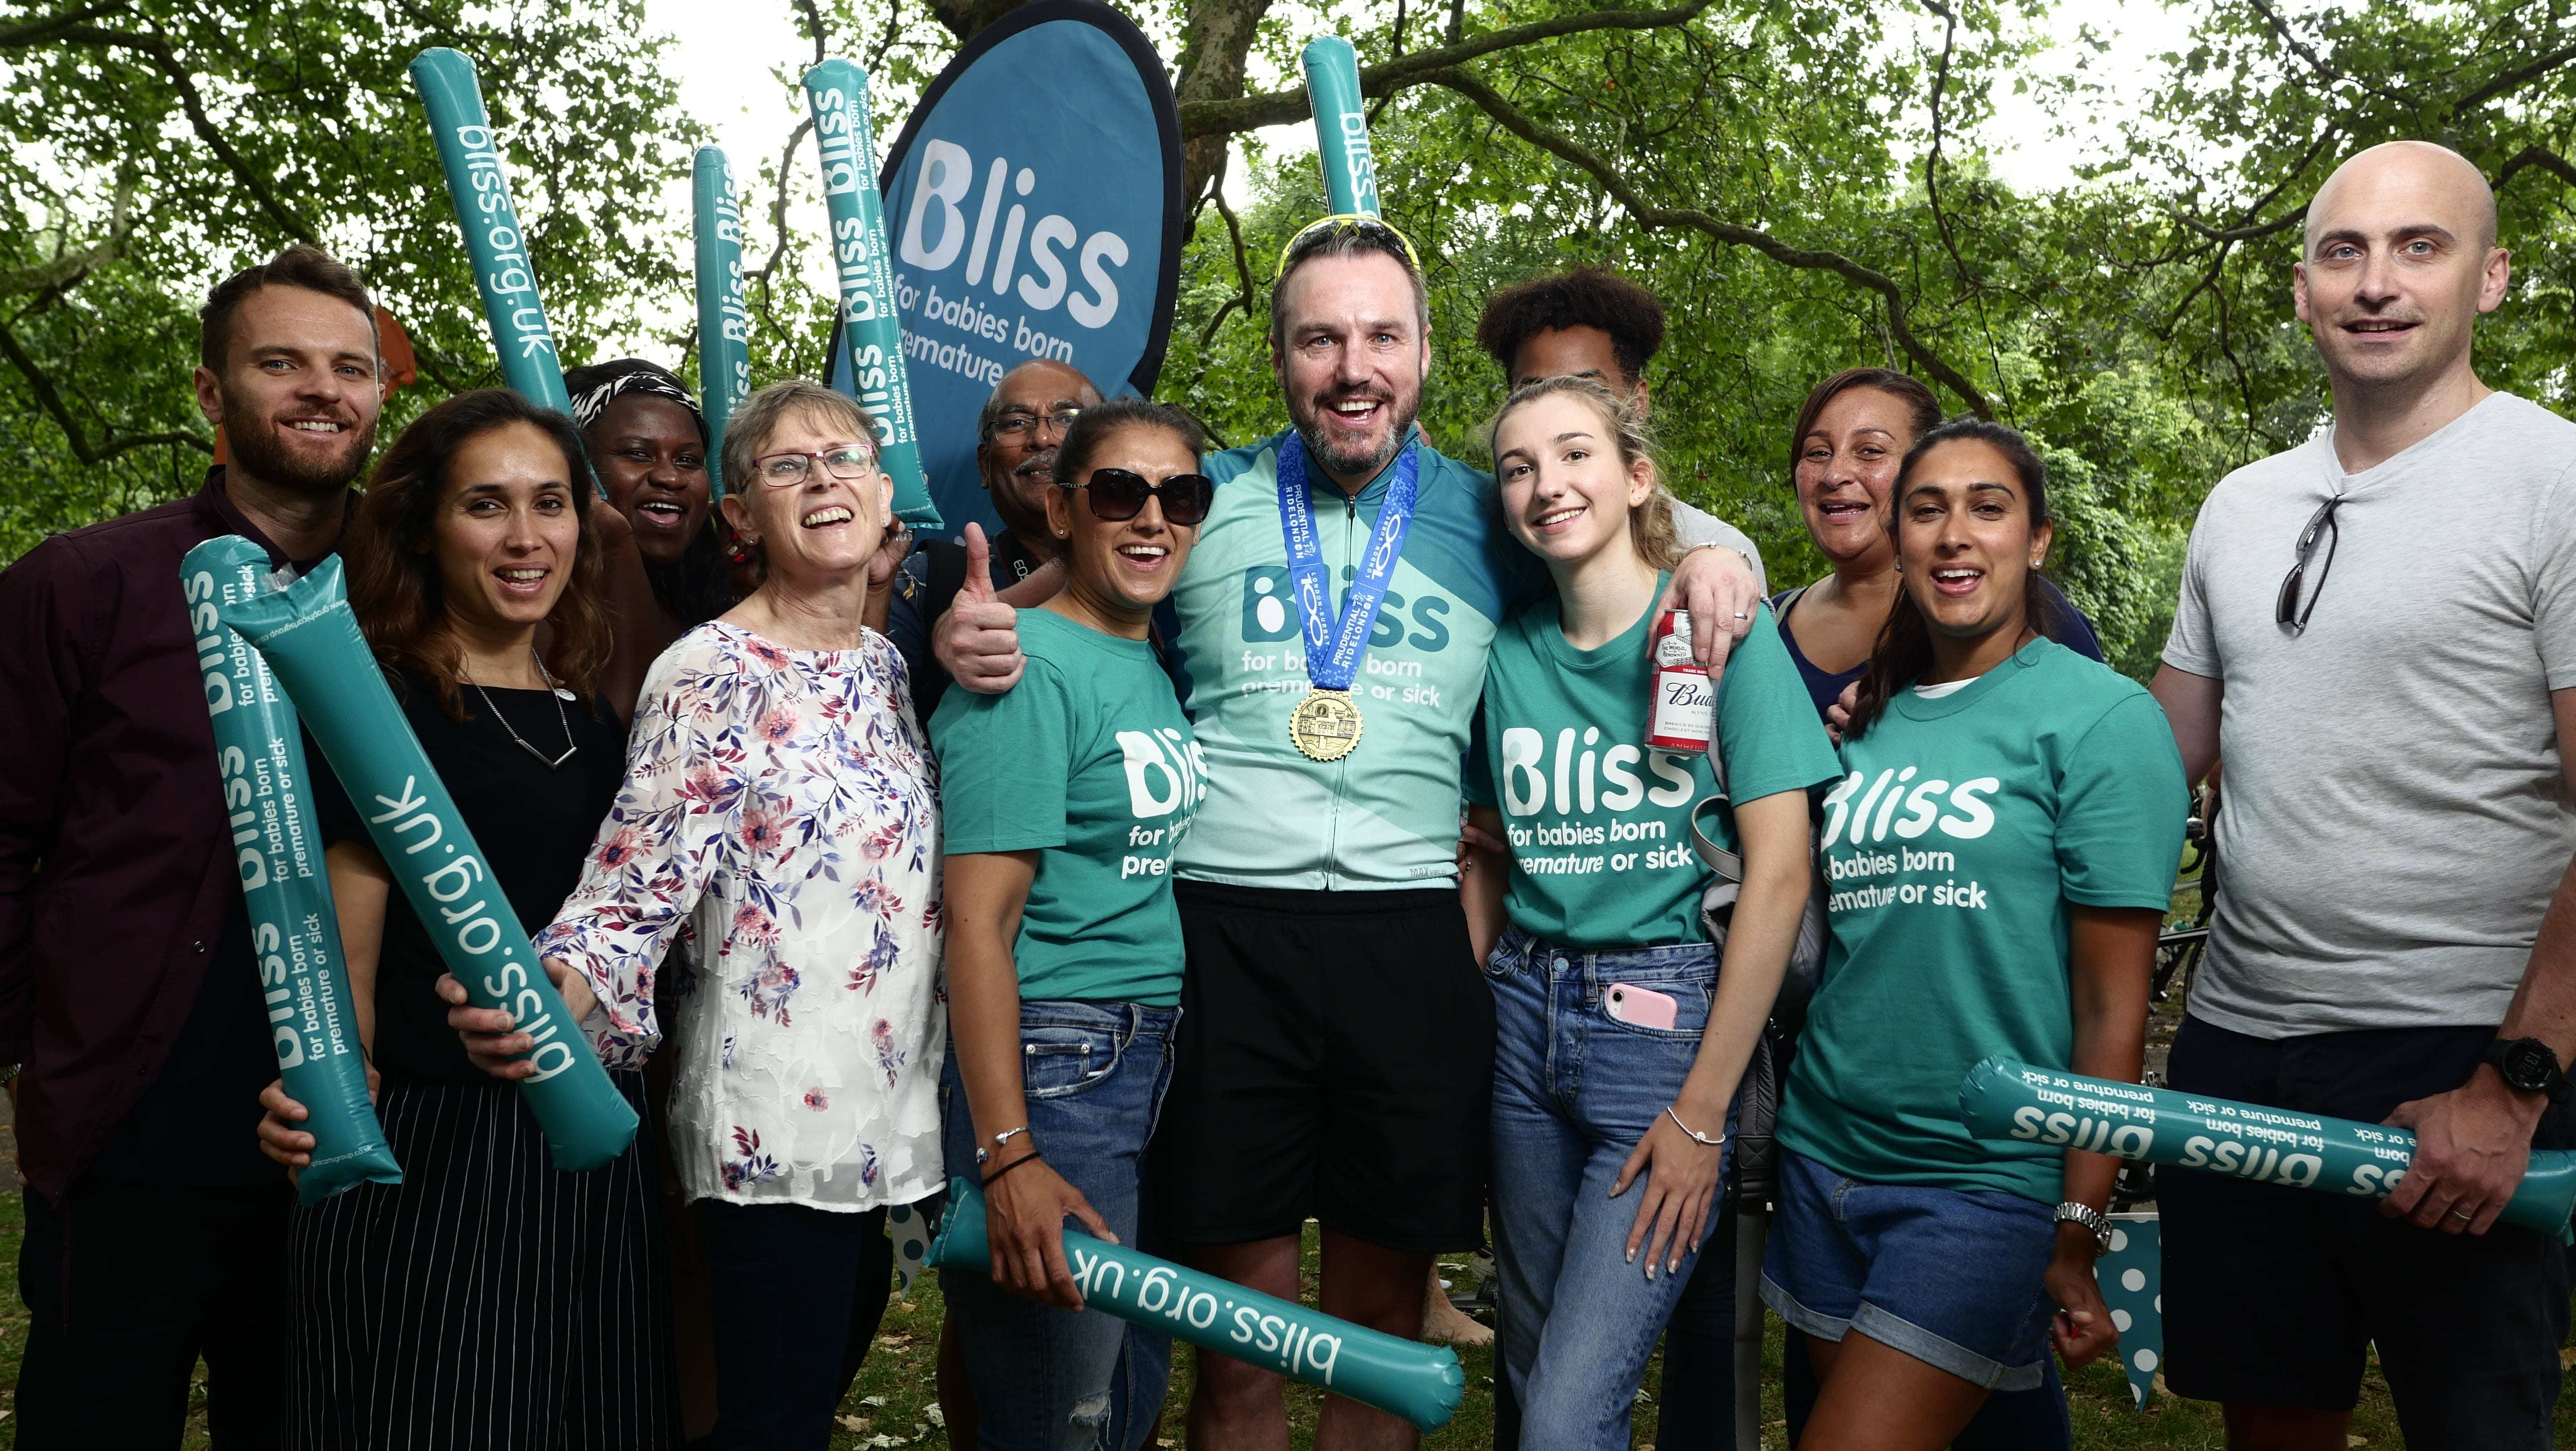 Team of bliss supporters in Green park